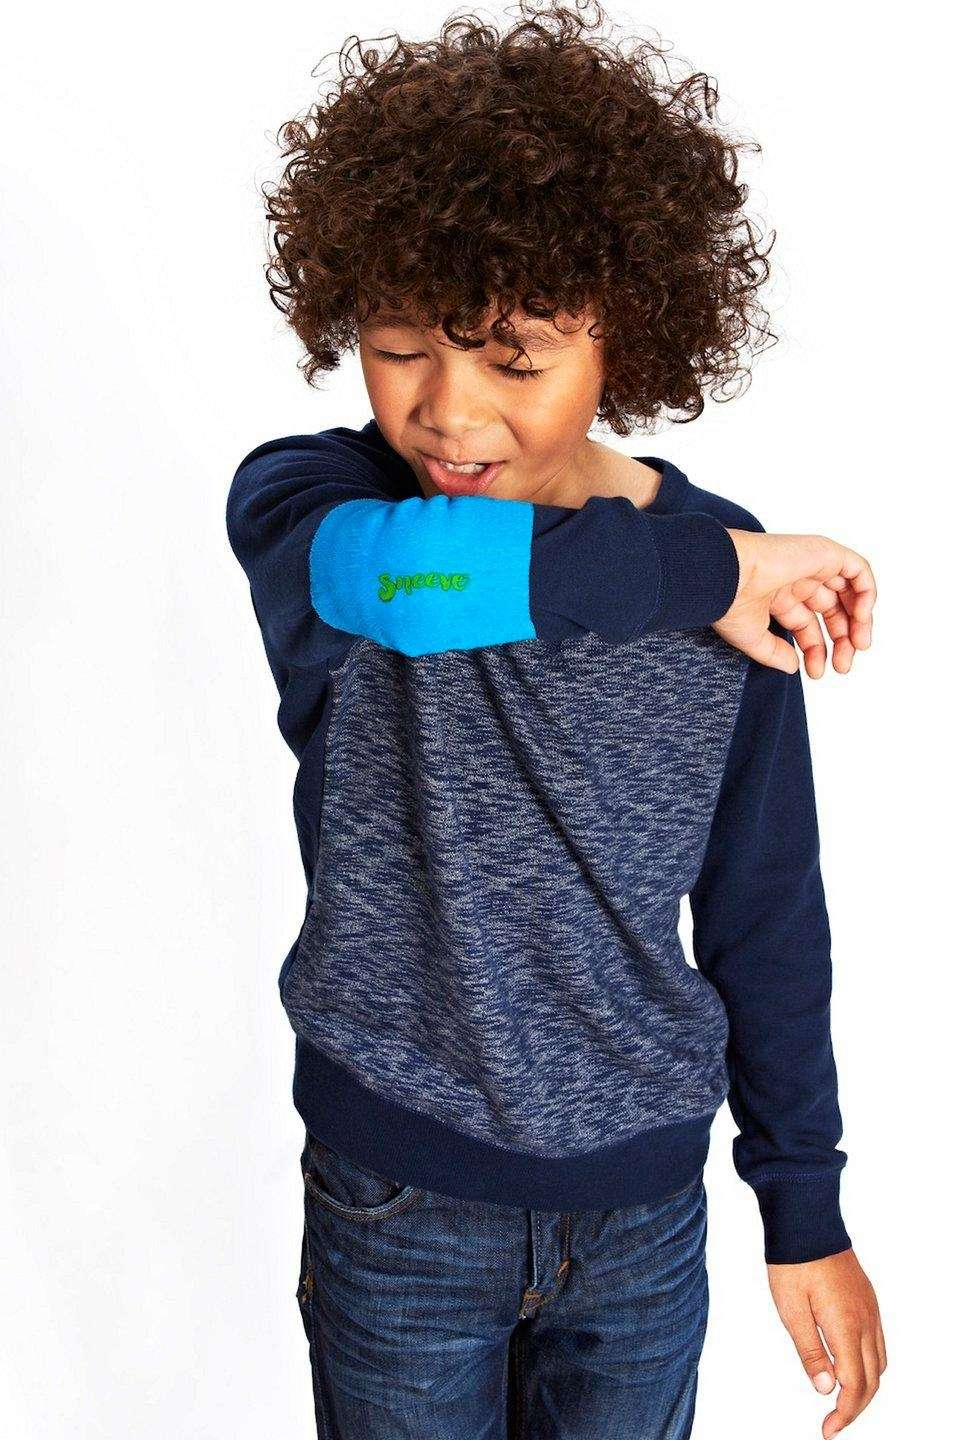 The Sneeve, a stretchy, blue, antimicrobial sleeve that